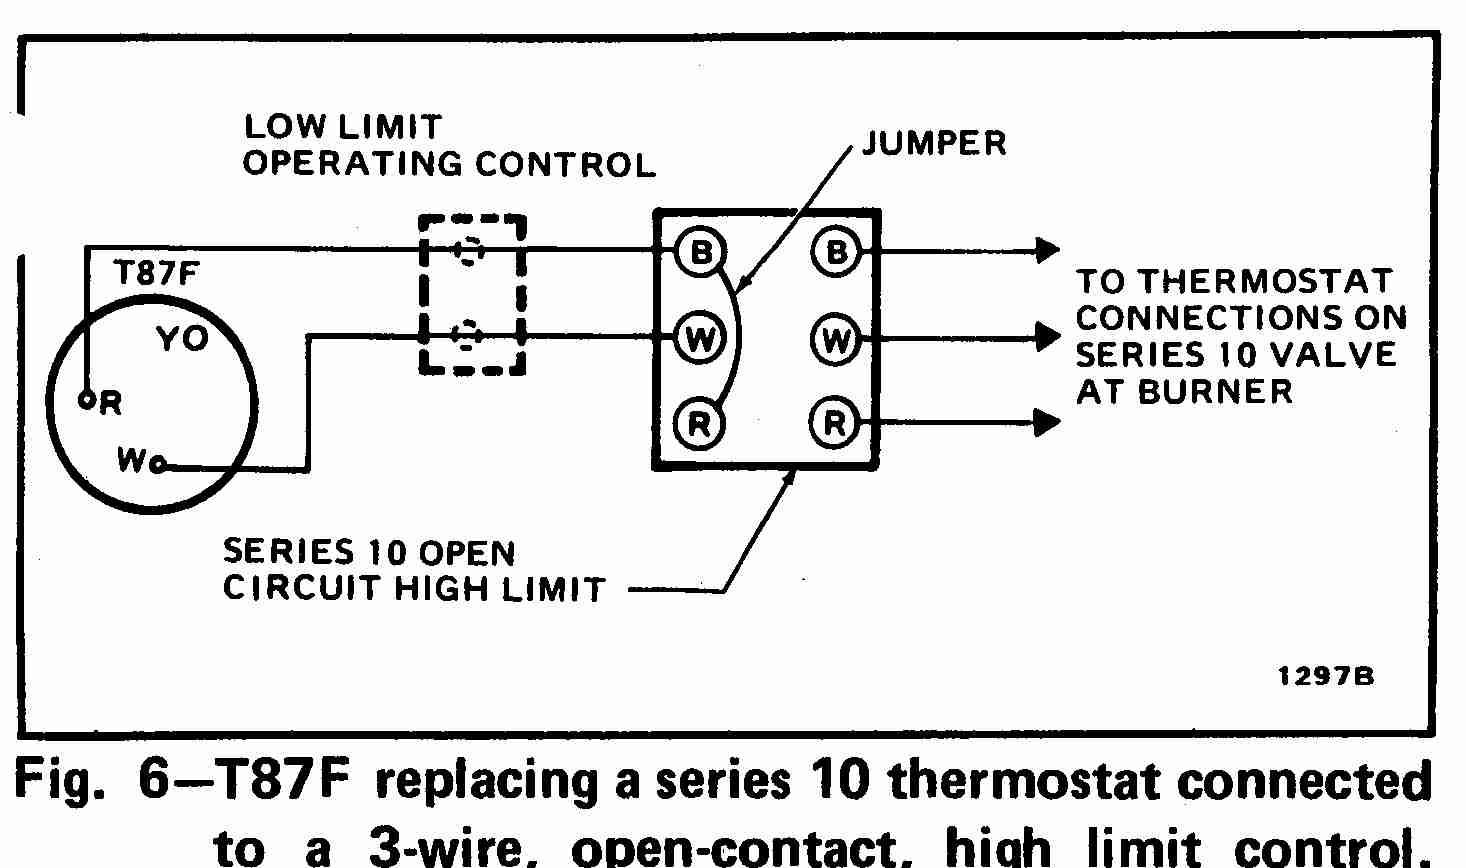 3 Wire Heat Only Thermostat Wiring Diagram - Wiring Diagram G8 Wire Diagram For Furnace on kitchen wire diagram, iron wire diagram, fridge wire diagram, ups power systems diagram, central air wire diagram, hvac wire diagram, ladder wire diagram, washer wire diagram, thermostat wire diagram, freezer wire diagram, heat wire diagram, clothes dryer wire diagram, range wire diagram, five wire diagram, tv antenna wire diagram, garage wire diagram, septic wire diagram, a/c wire diagram, refrigeration wire diagram, pump wire diagram,